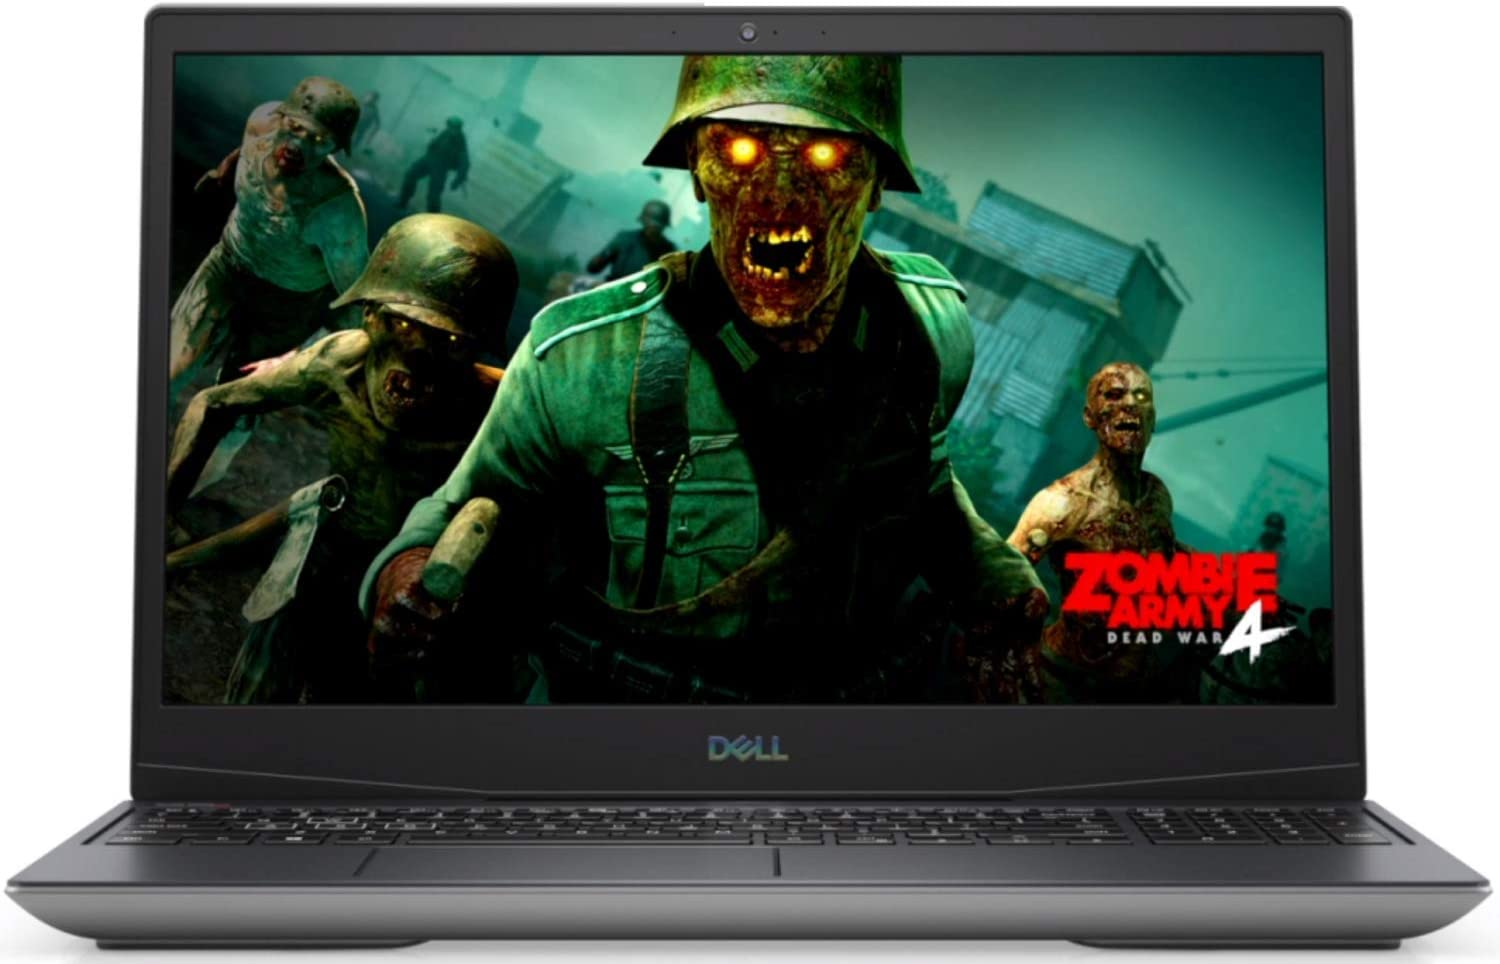 "Newest Dell G5 SE 5505 15.6"" FHD IPS High Performance Gaming Laptop, AMD 4th Gen Ryzen 5 4600H 6-core, 8GB RAM, 256GB PCIe SSD, Backlit Keyboard, AMD Radeon RX 5600M, Windows 10"